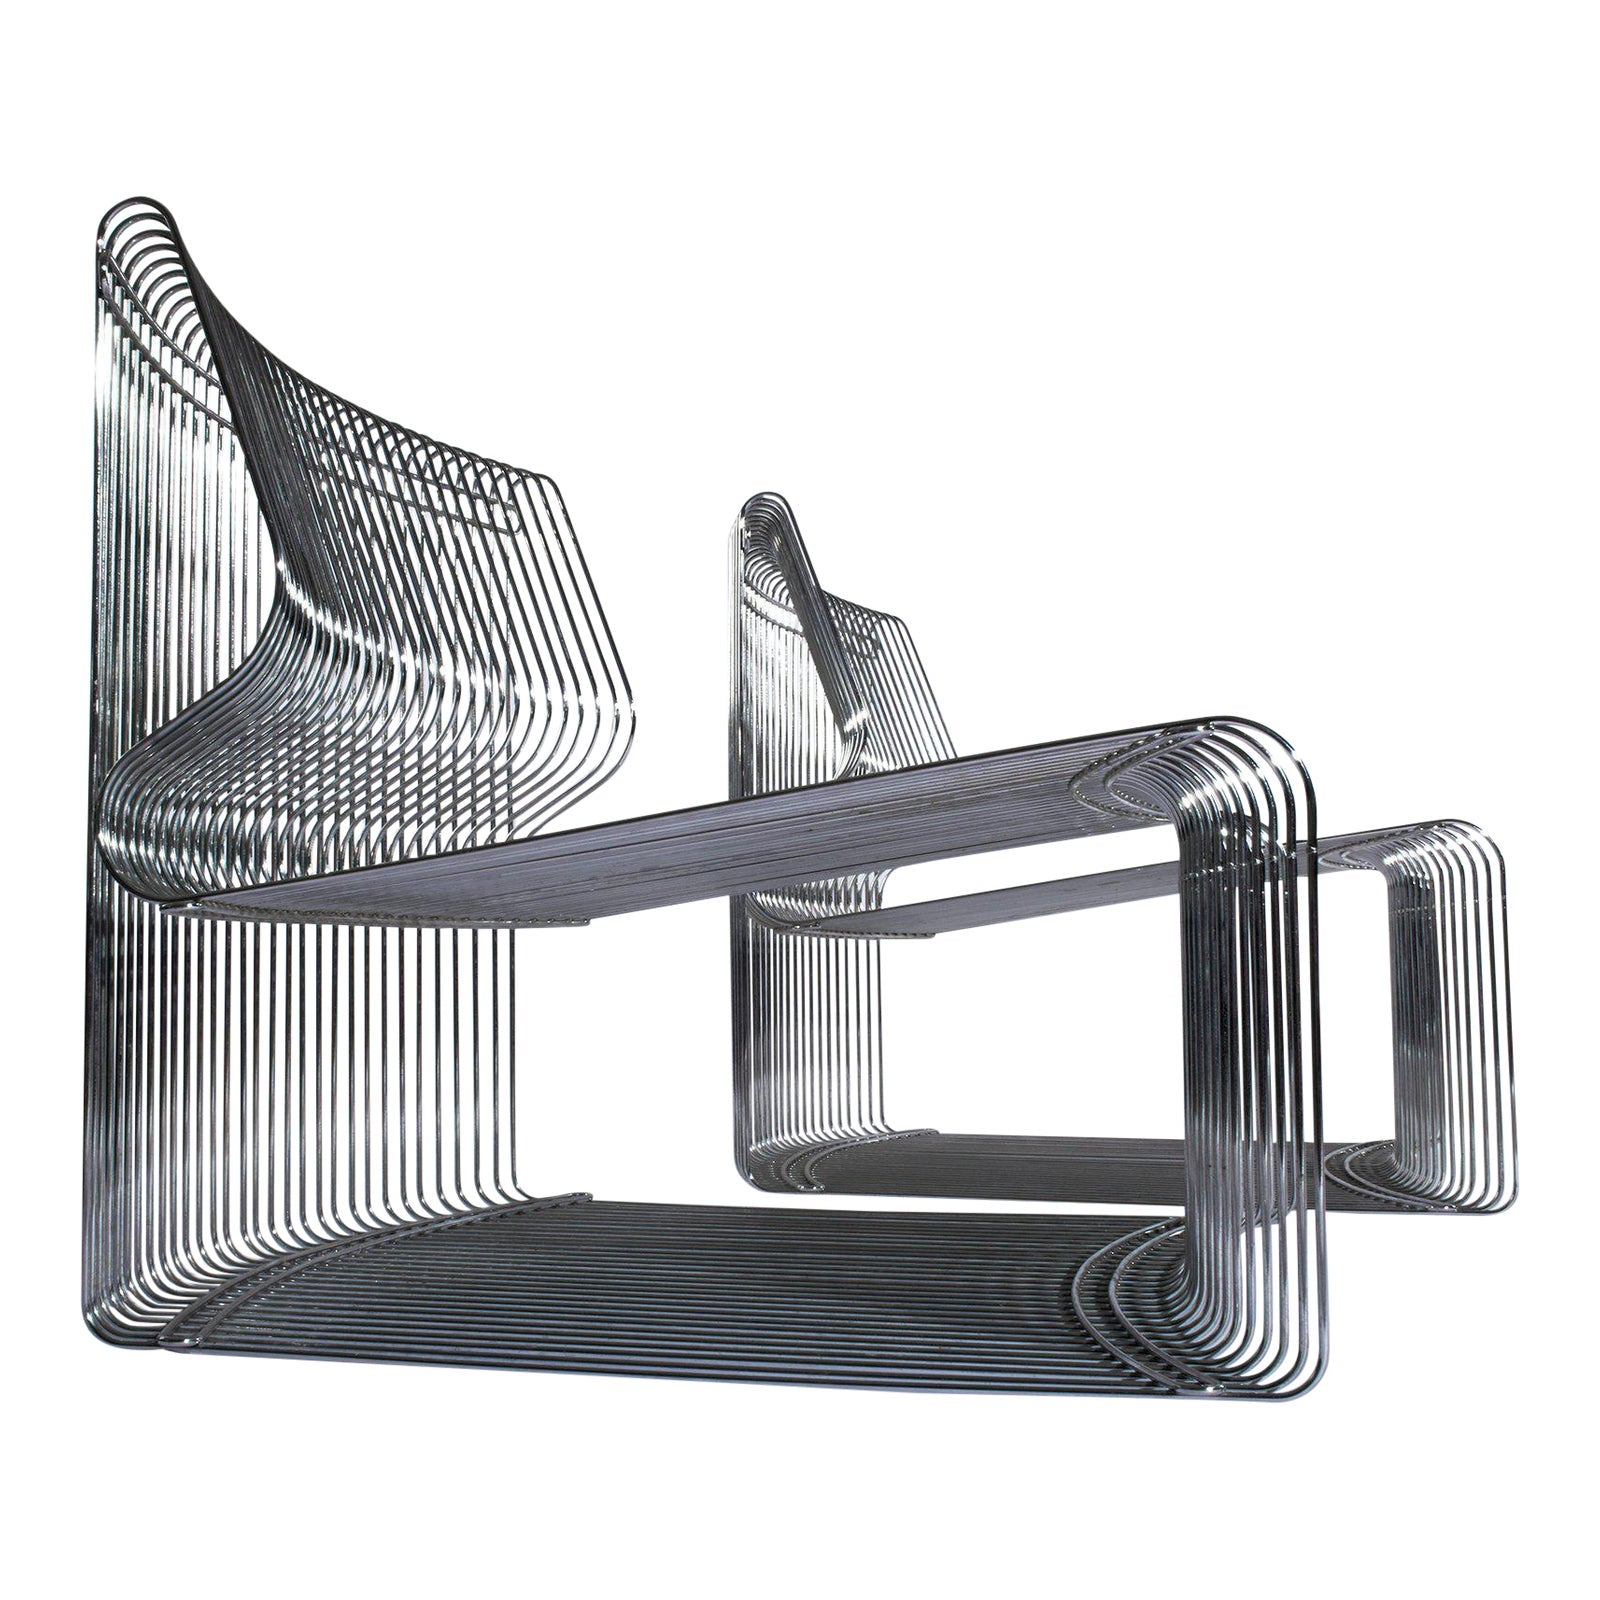 Chaise Panton Verner Panton verner panton for fritz hansen pair of pantonova chairs circa 1971 verner  panton for fritz hansen pair of pantonova chairs circa 1971